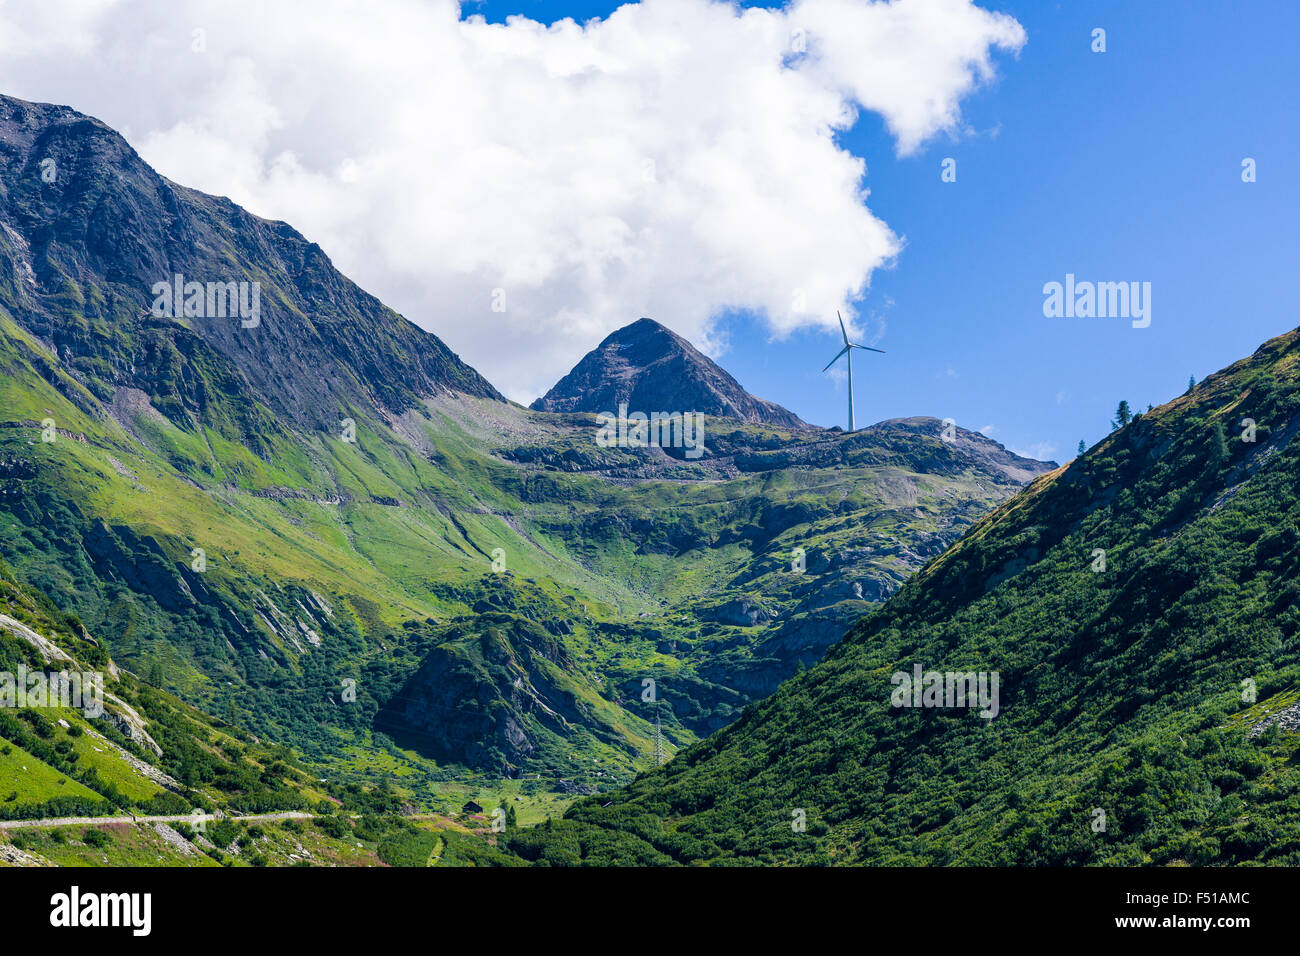 A wind powerplant is erected on mountains at high altitude near Nufenenpass - Stock Image